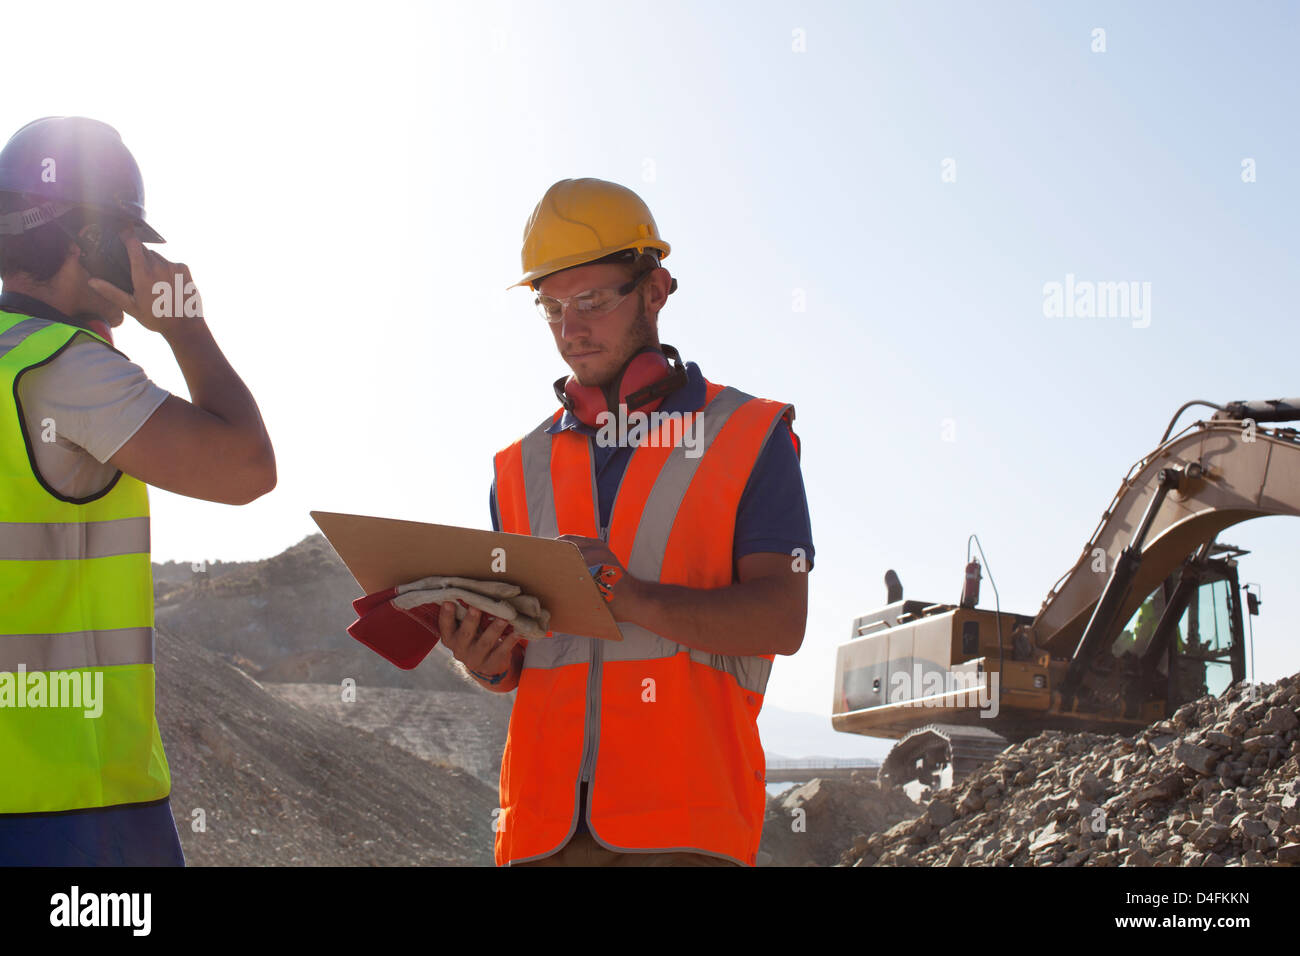 Workers standing in quarry Photo Stock